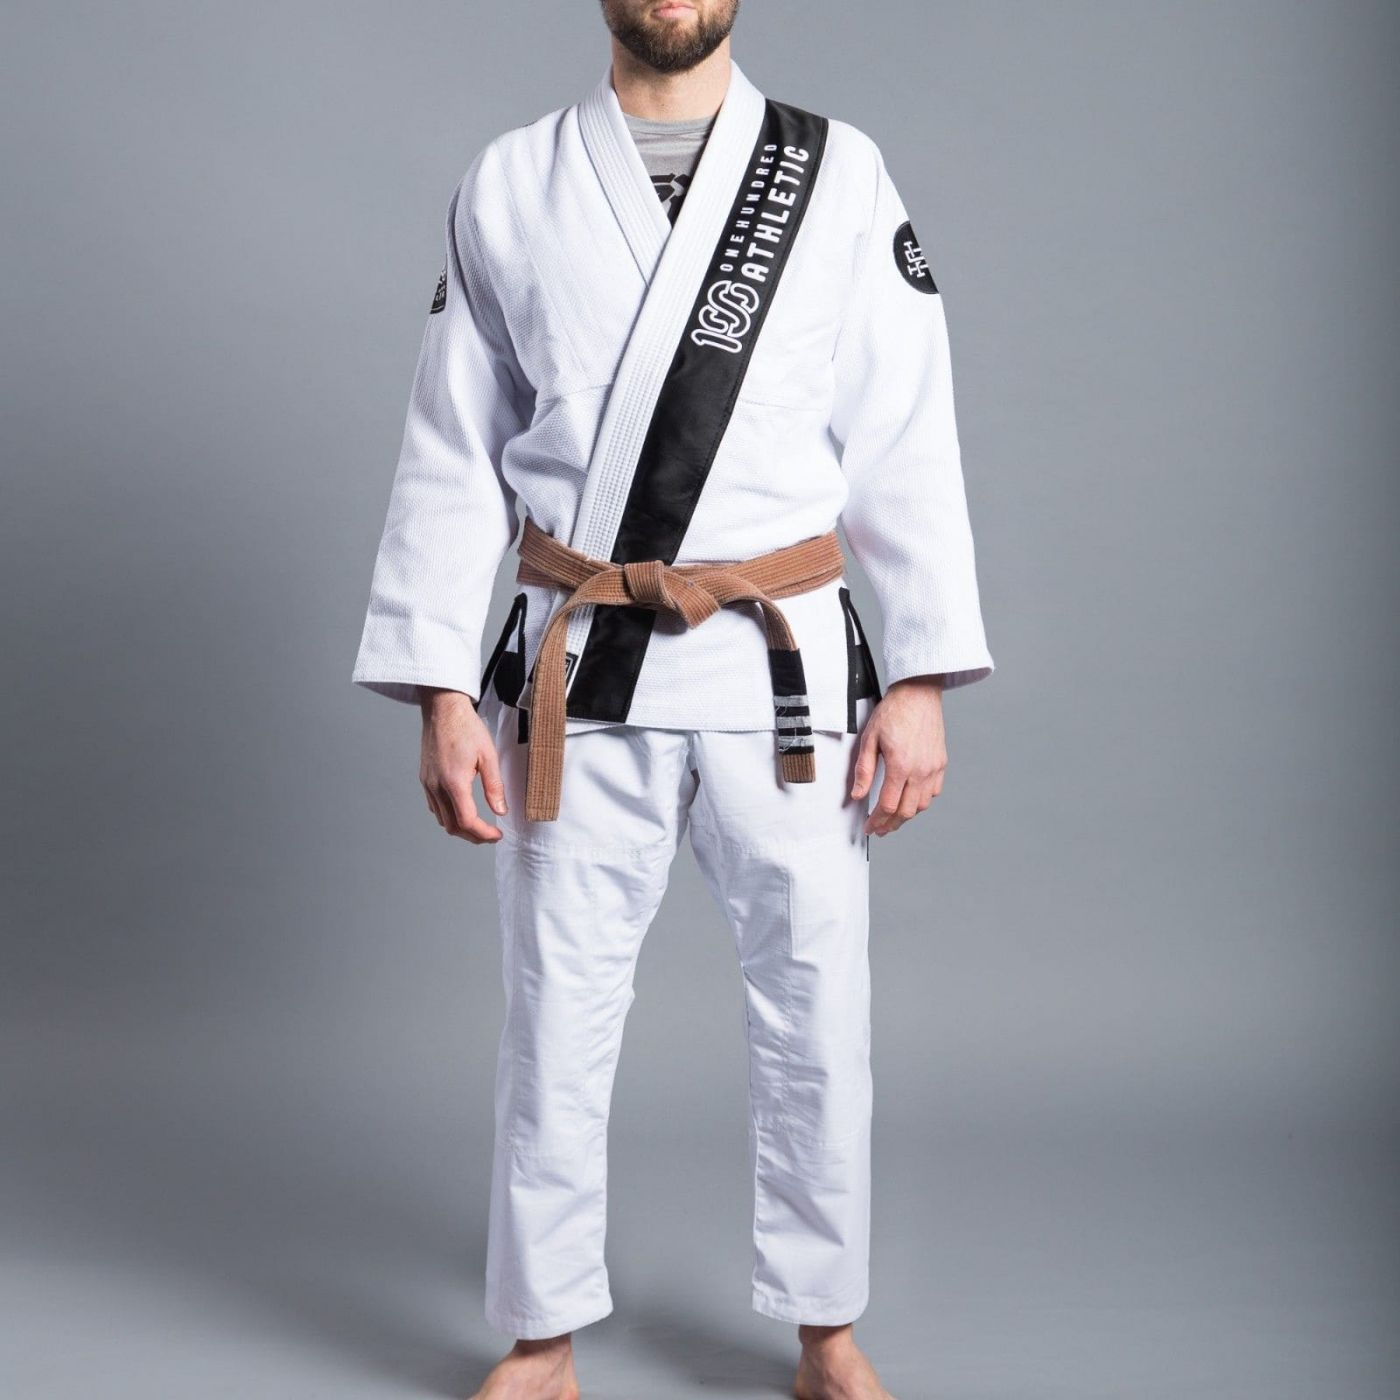 Кимоно Scramble x 100 Athletic BJJ White